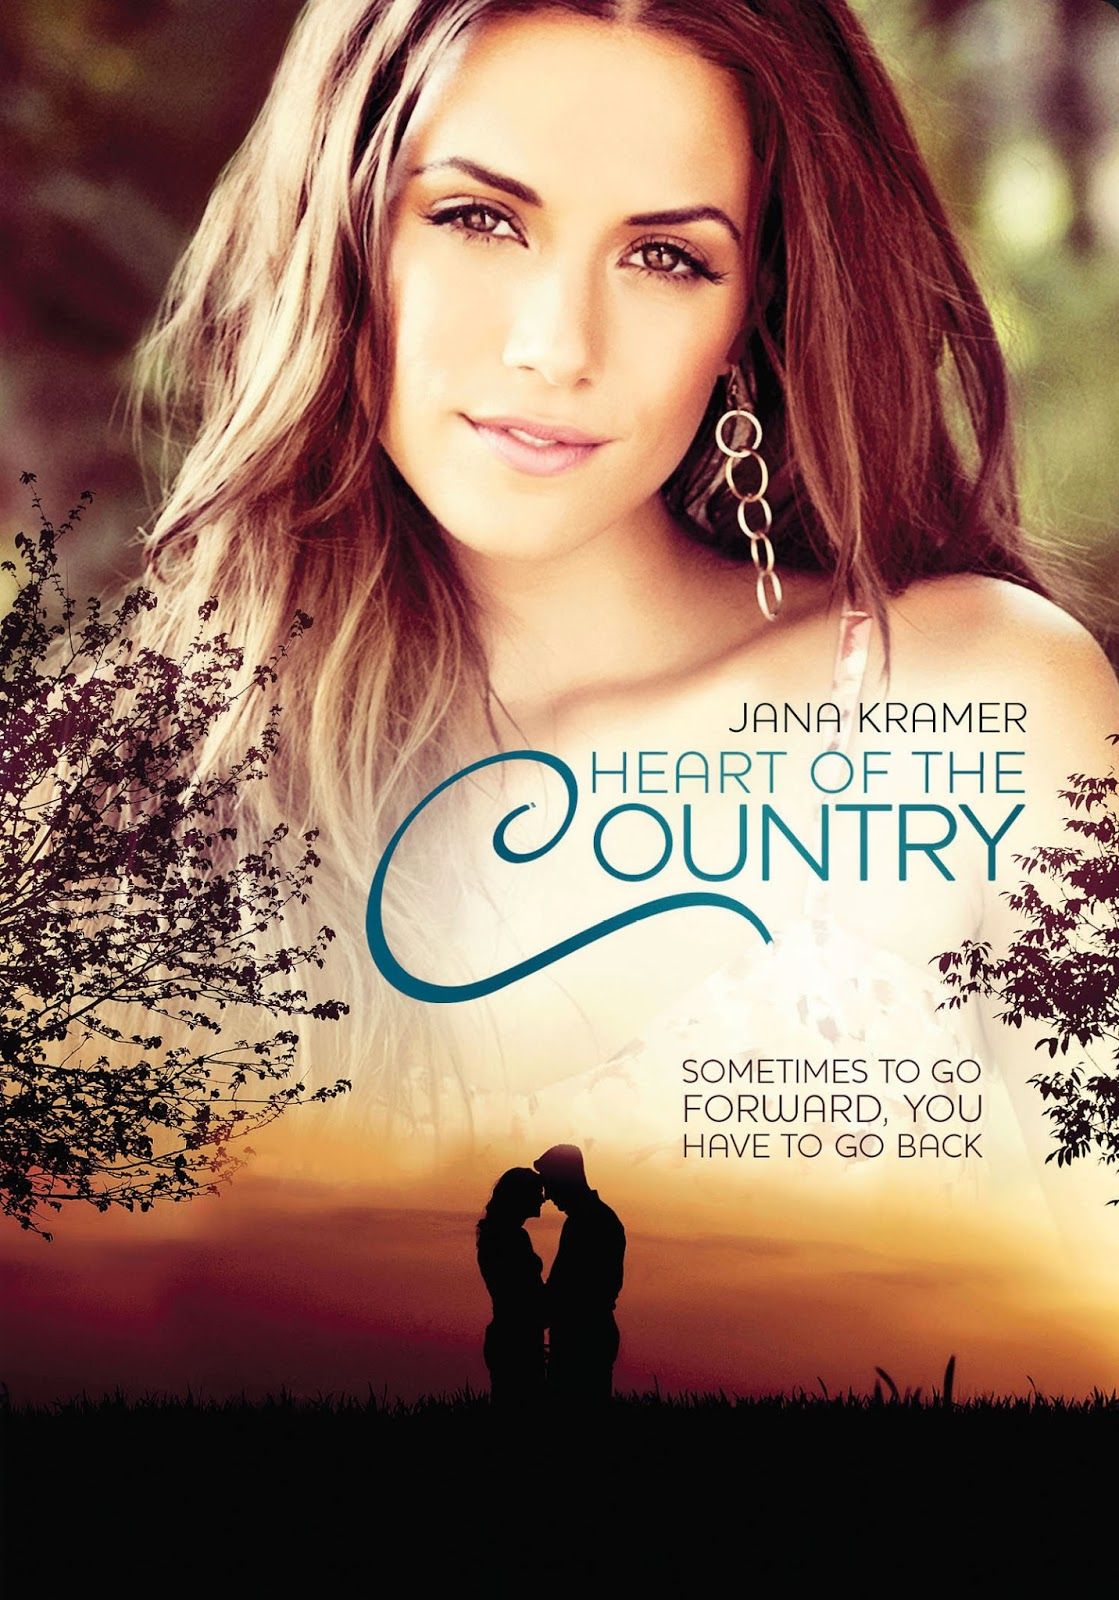 Heart Of The Country (2013) DVDRip ταινιες online seires oipeirates greek subs